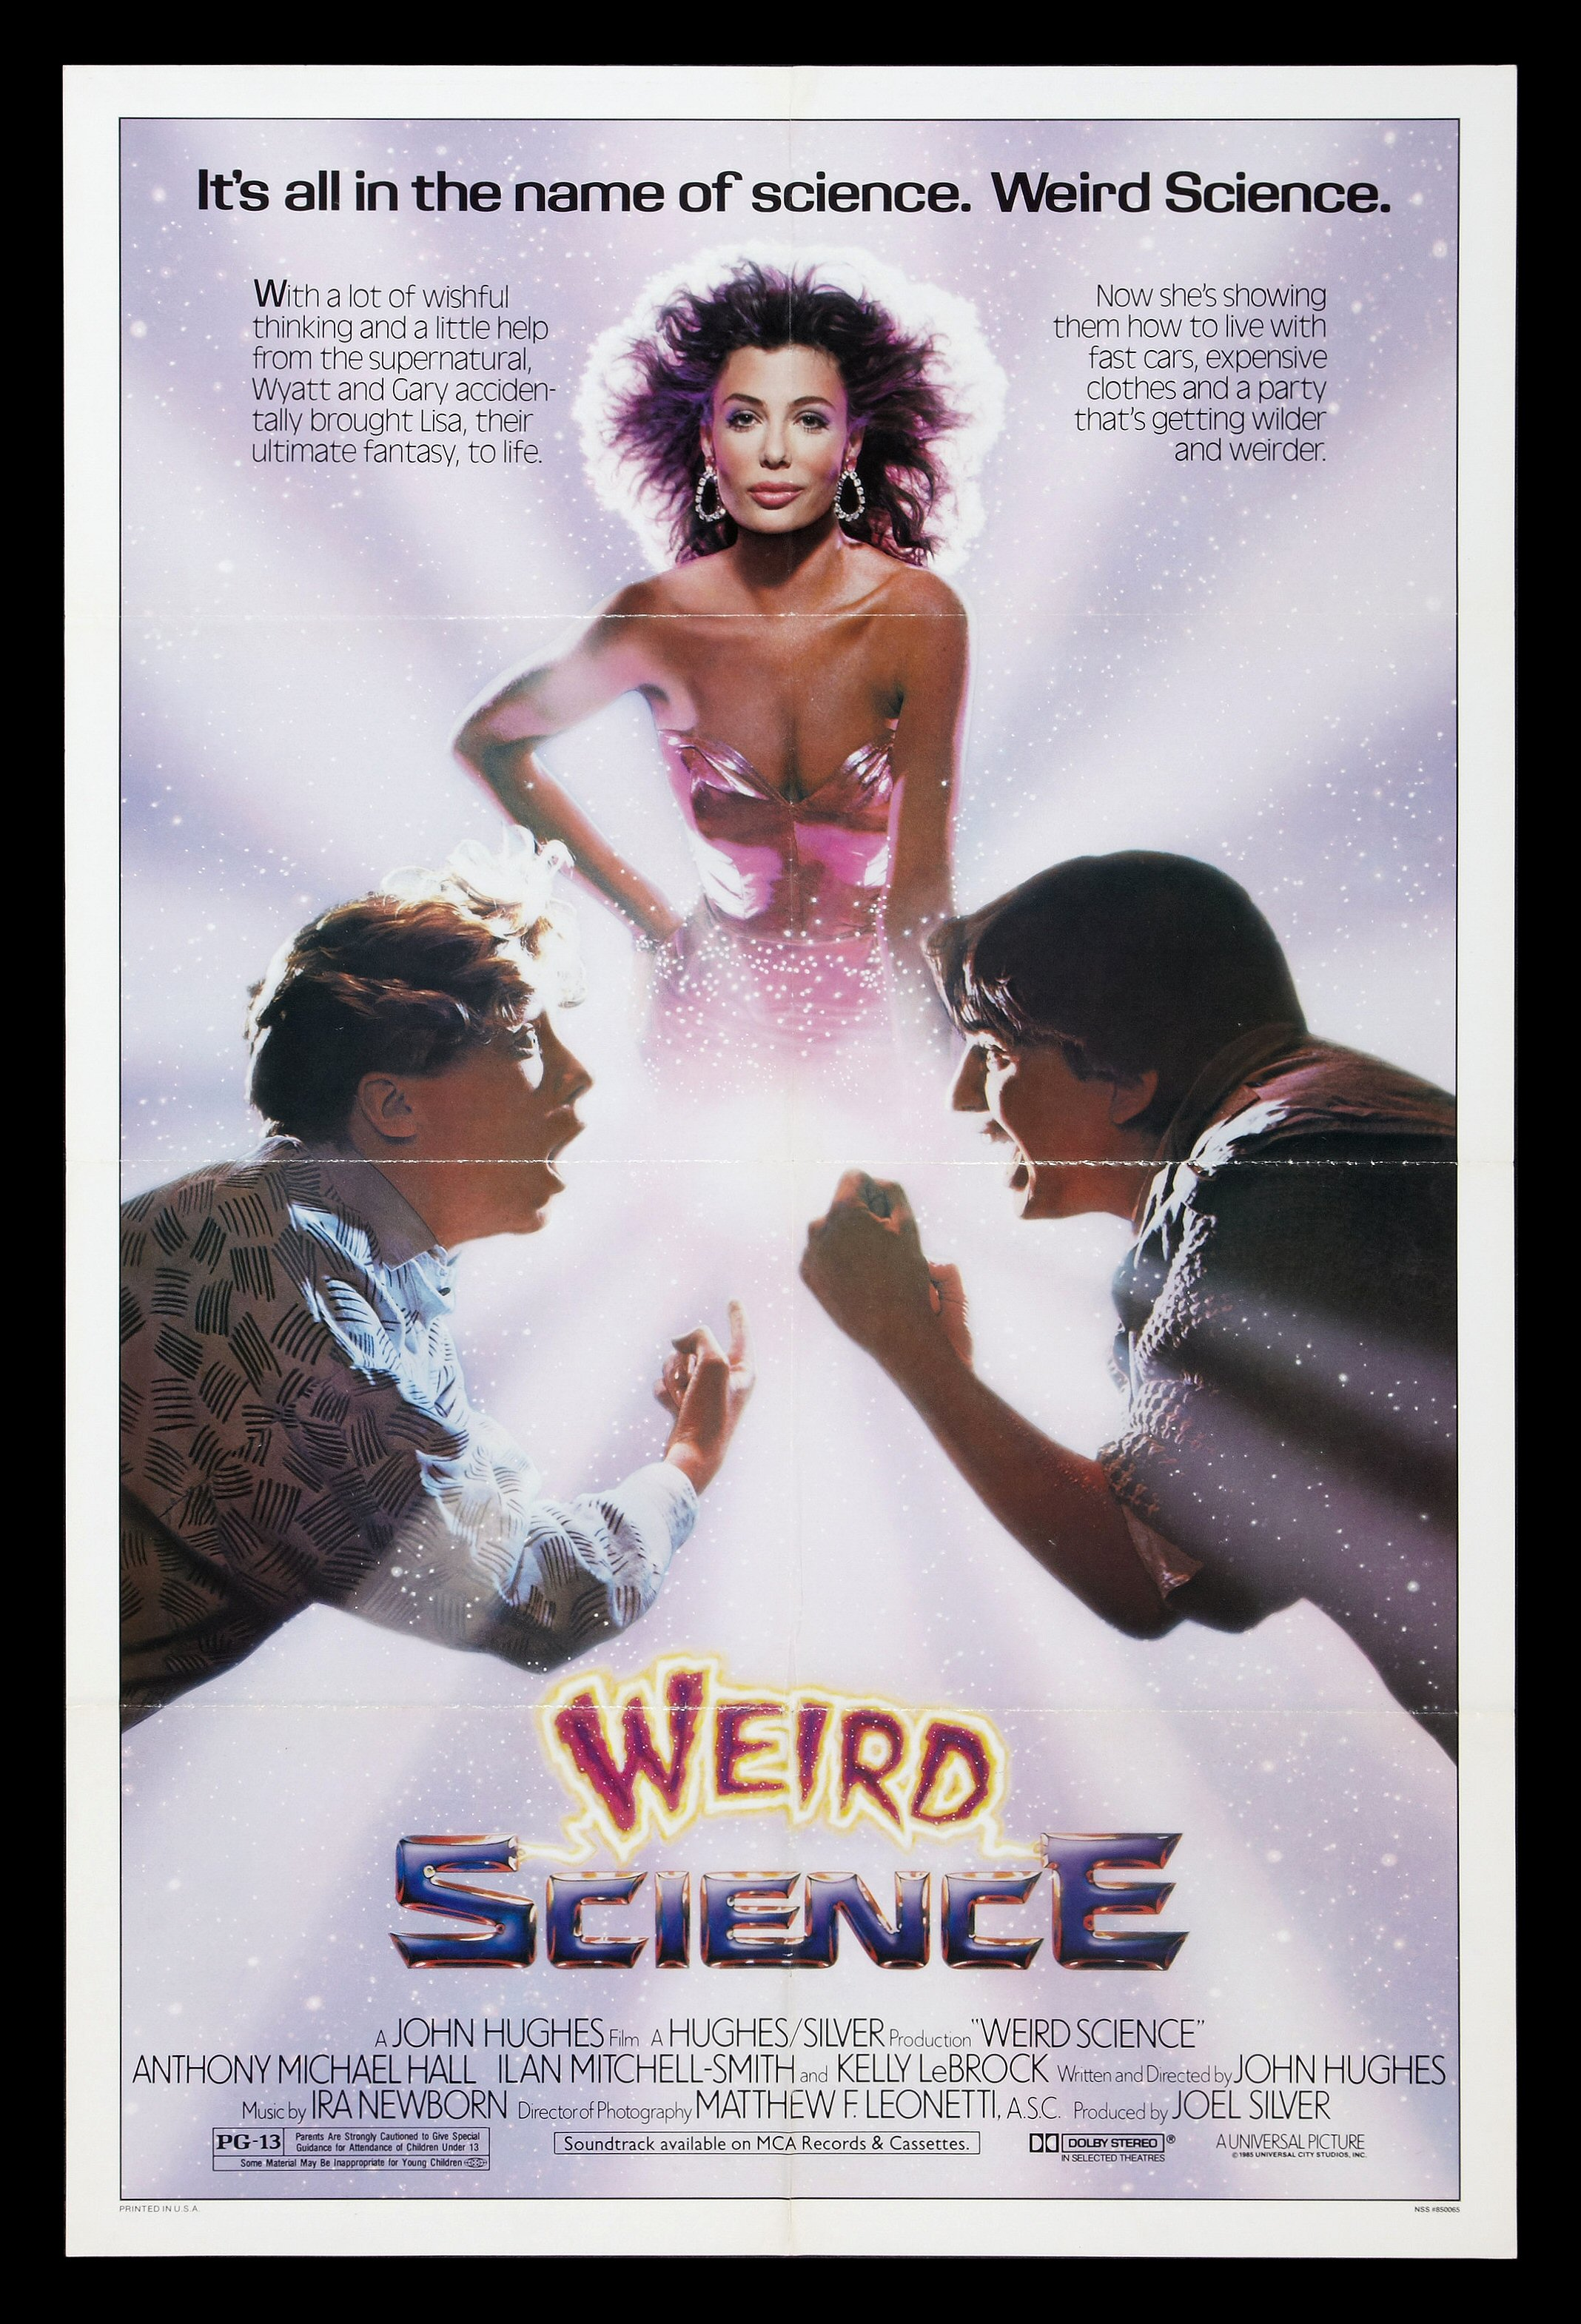 Weird Science Poster | eBay